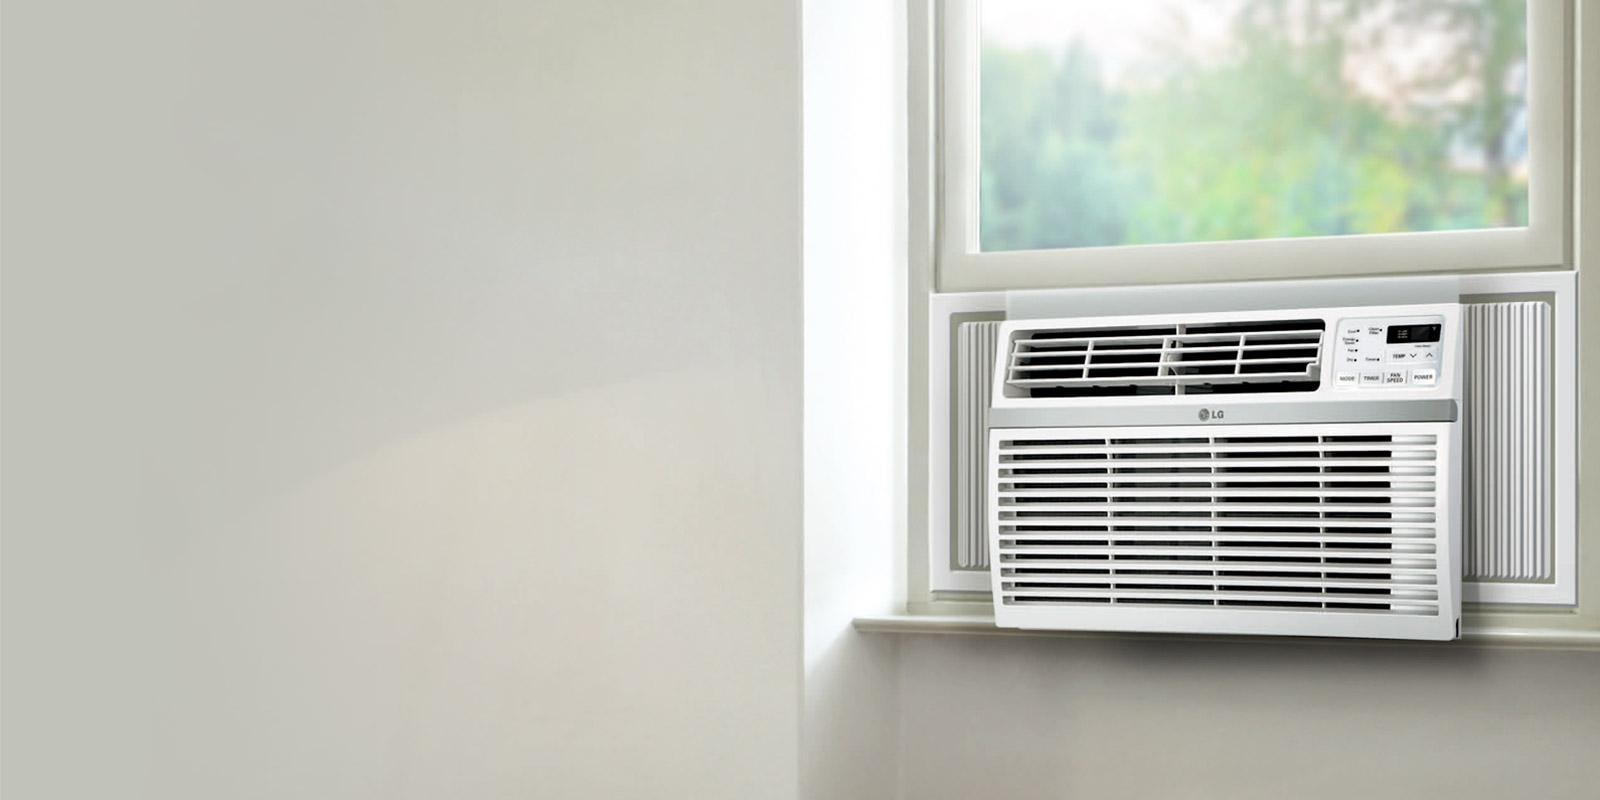 Lg air conditioner units stay cool comfortable lg usa for 12 inch high window air conditioner